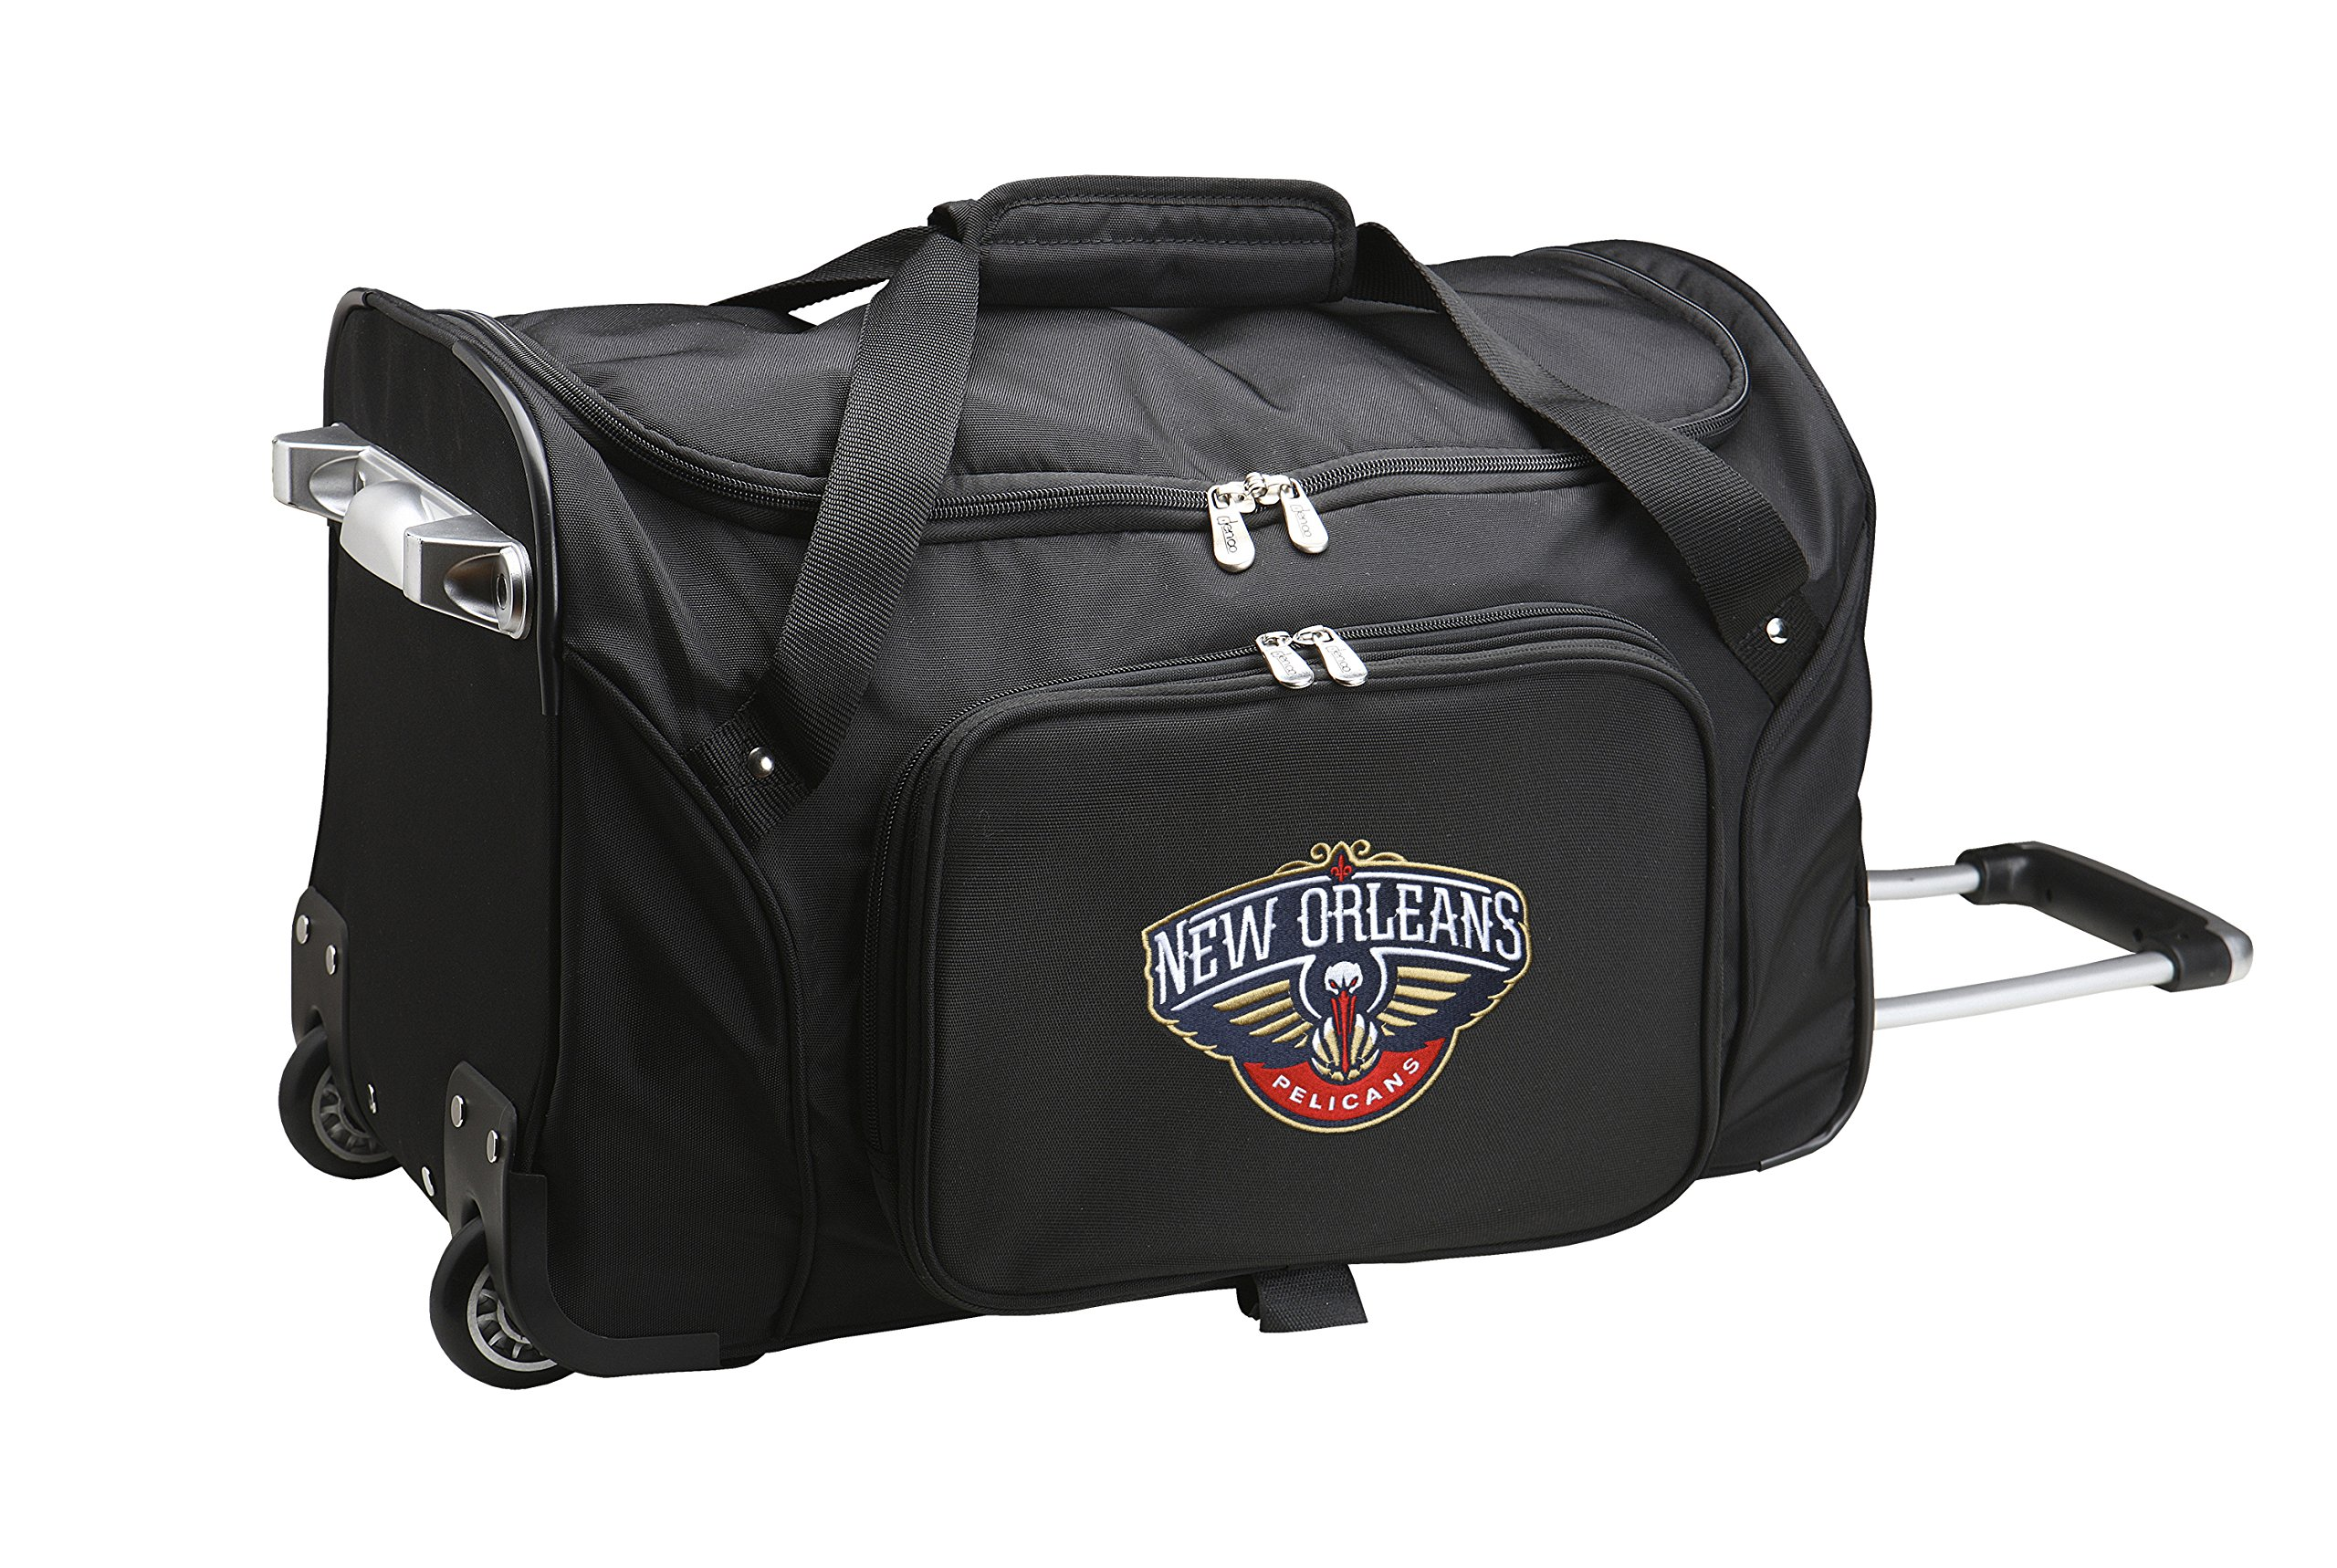 NBA New Orleans Pelicans Wheeled Duffle Bag, 22 x 12 x 5.5'', Black